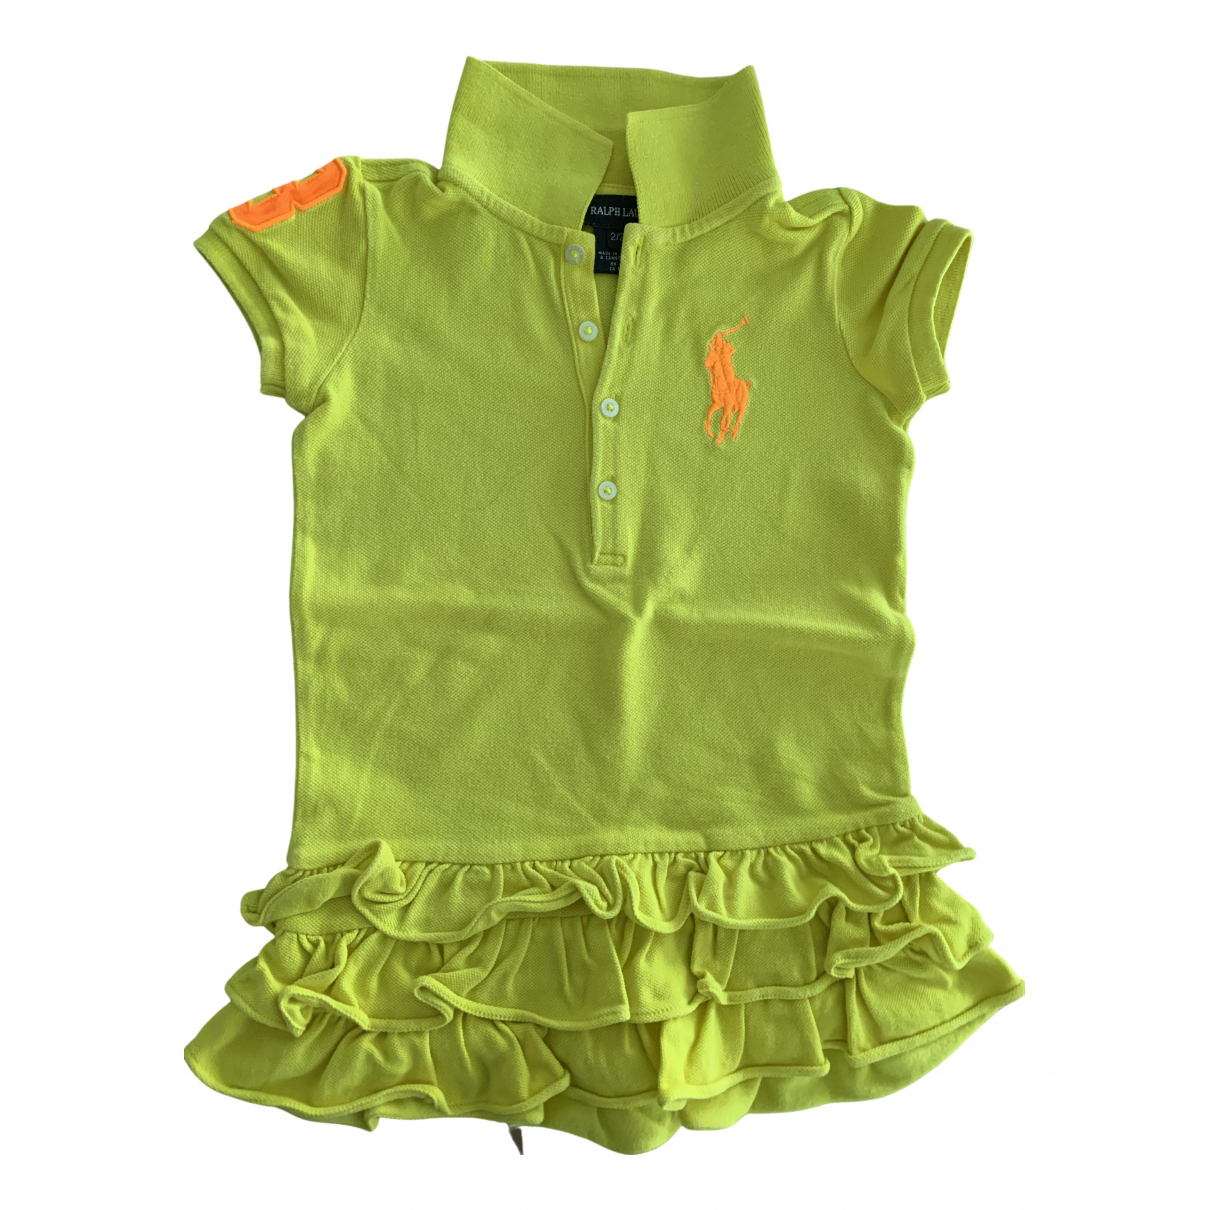 Ralph Lauren N Green Cotton dress for Kids 2 years - up to 86cm FR